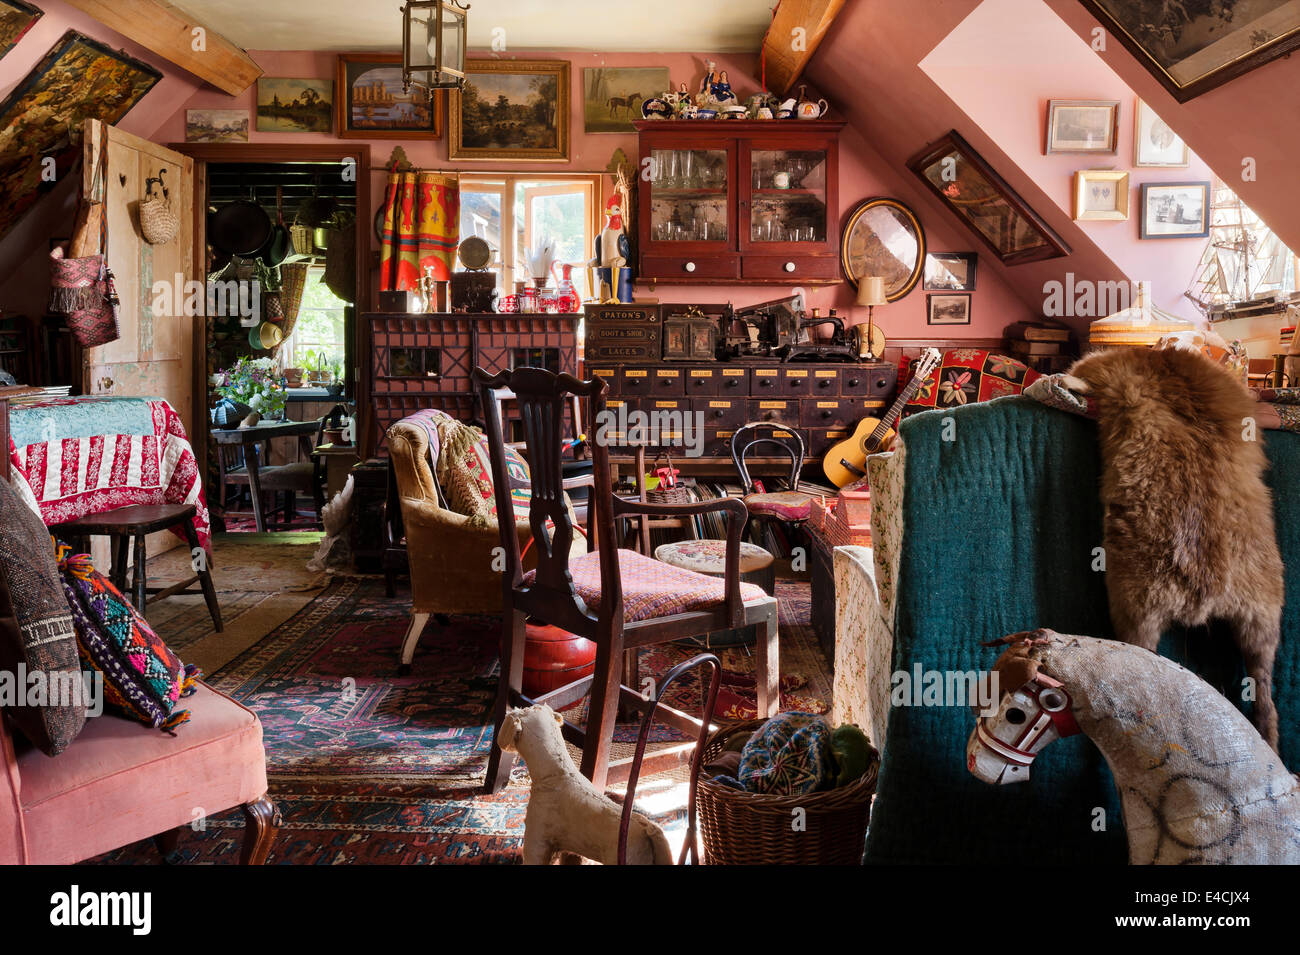 Cluttered cottage living room full of antique furniture, artwork, old toys  and vintage textiles - Cluttered Cottage Living Room Full Of Antique Furniture, Artwork